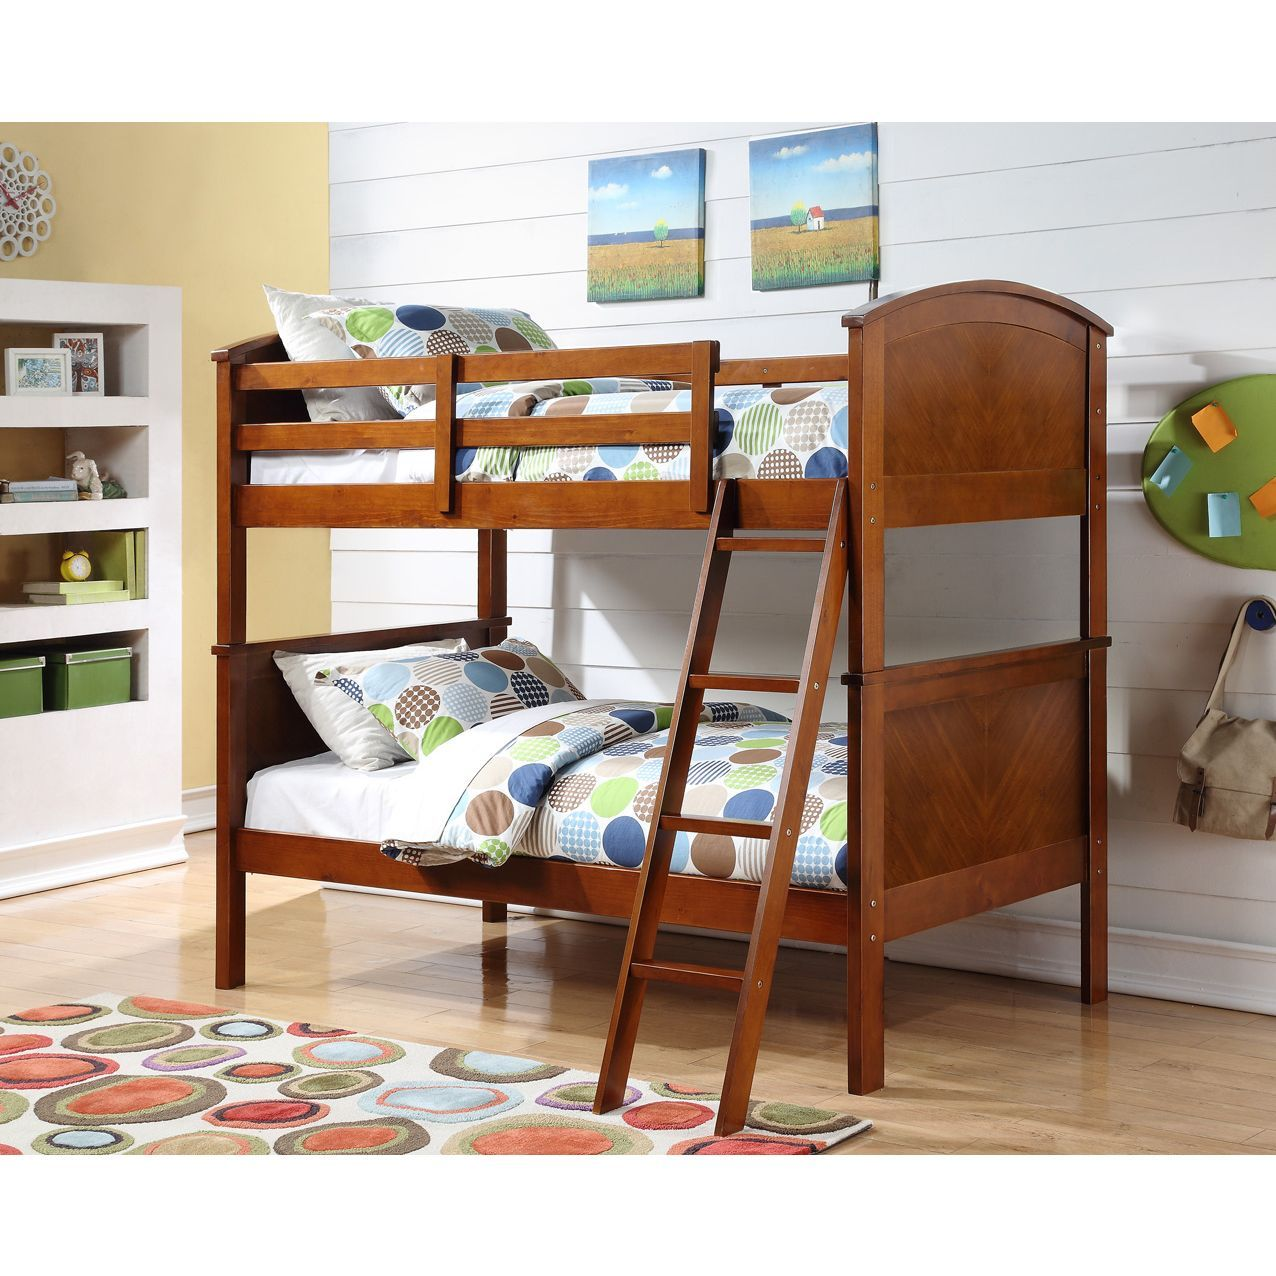 Loft bed twin over queen  Donco Kids Twin over Twin Arch Panel Oak Finished Bunk Bed Twin